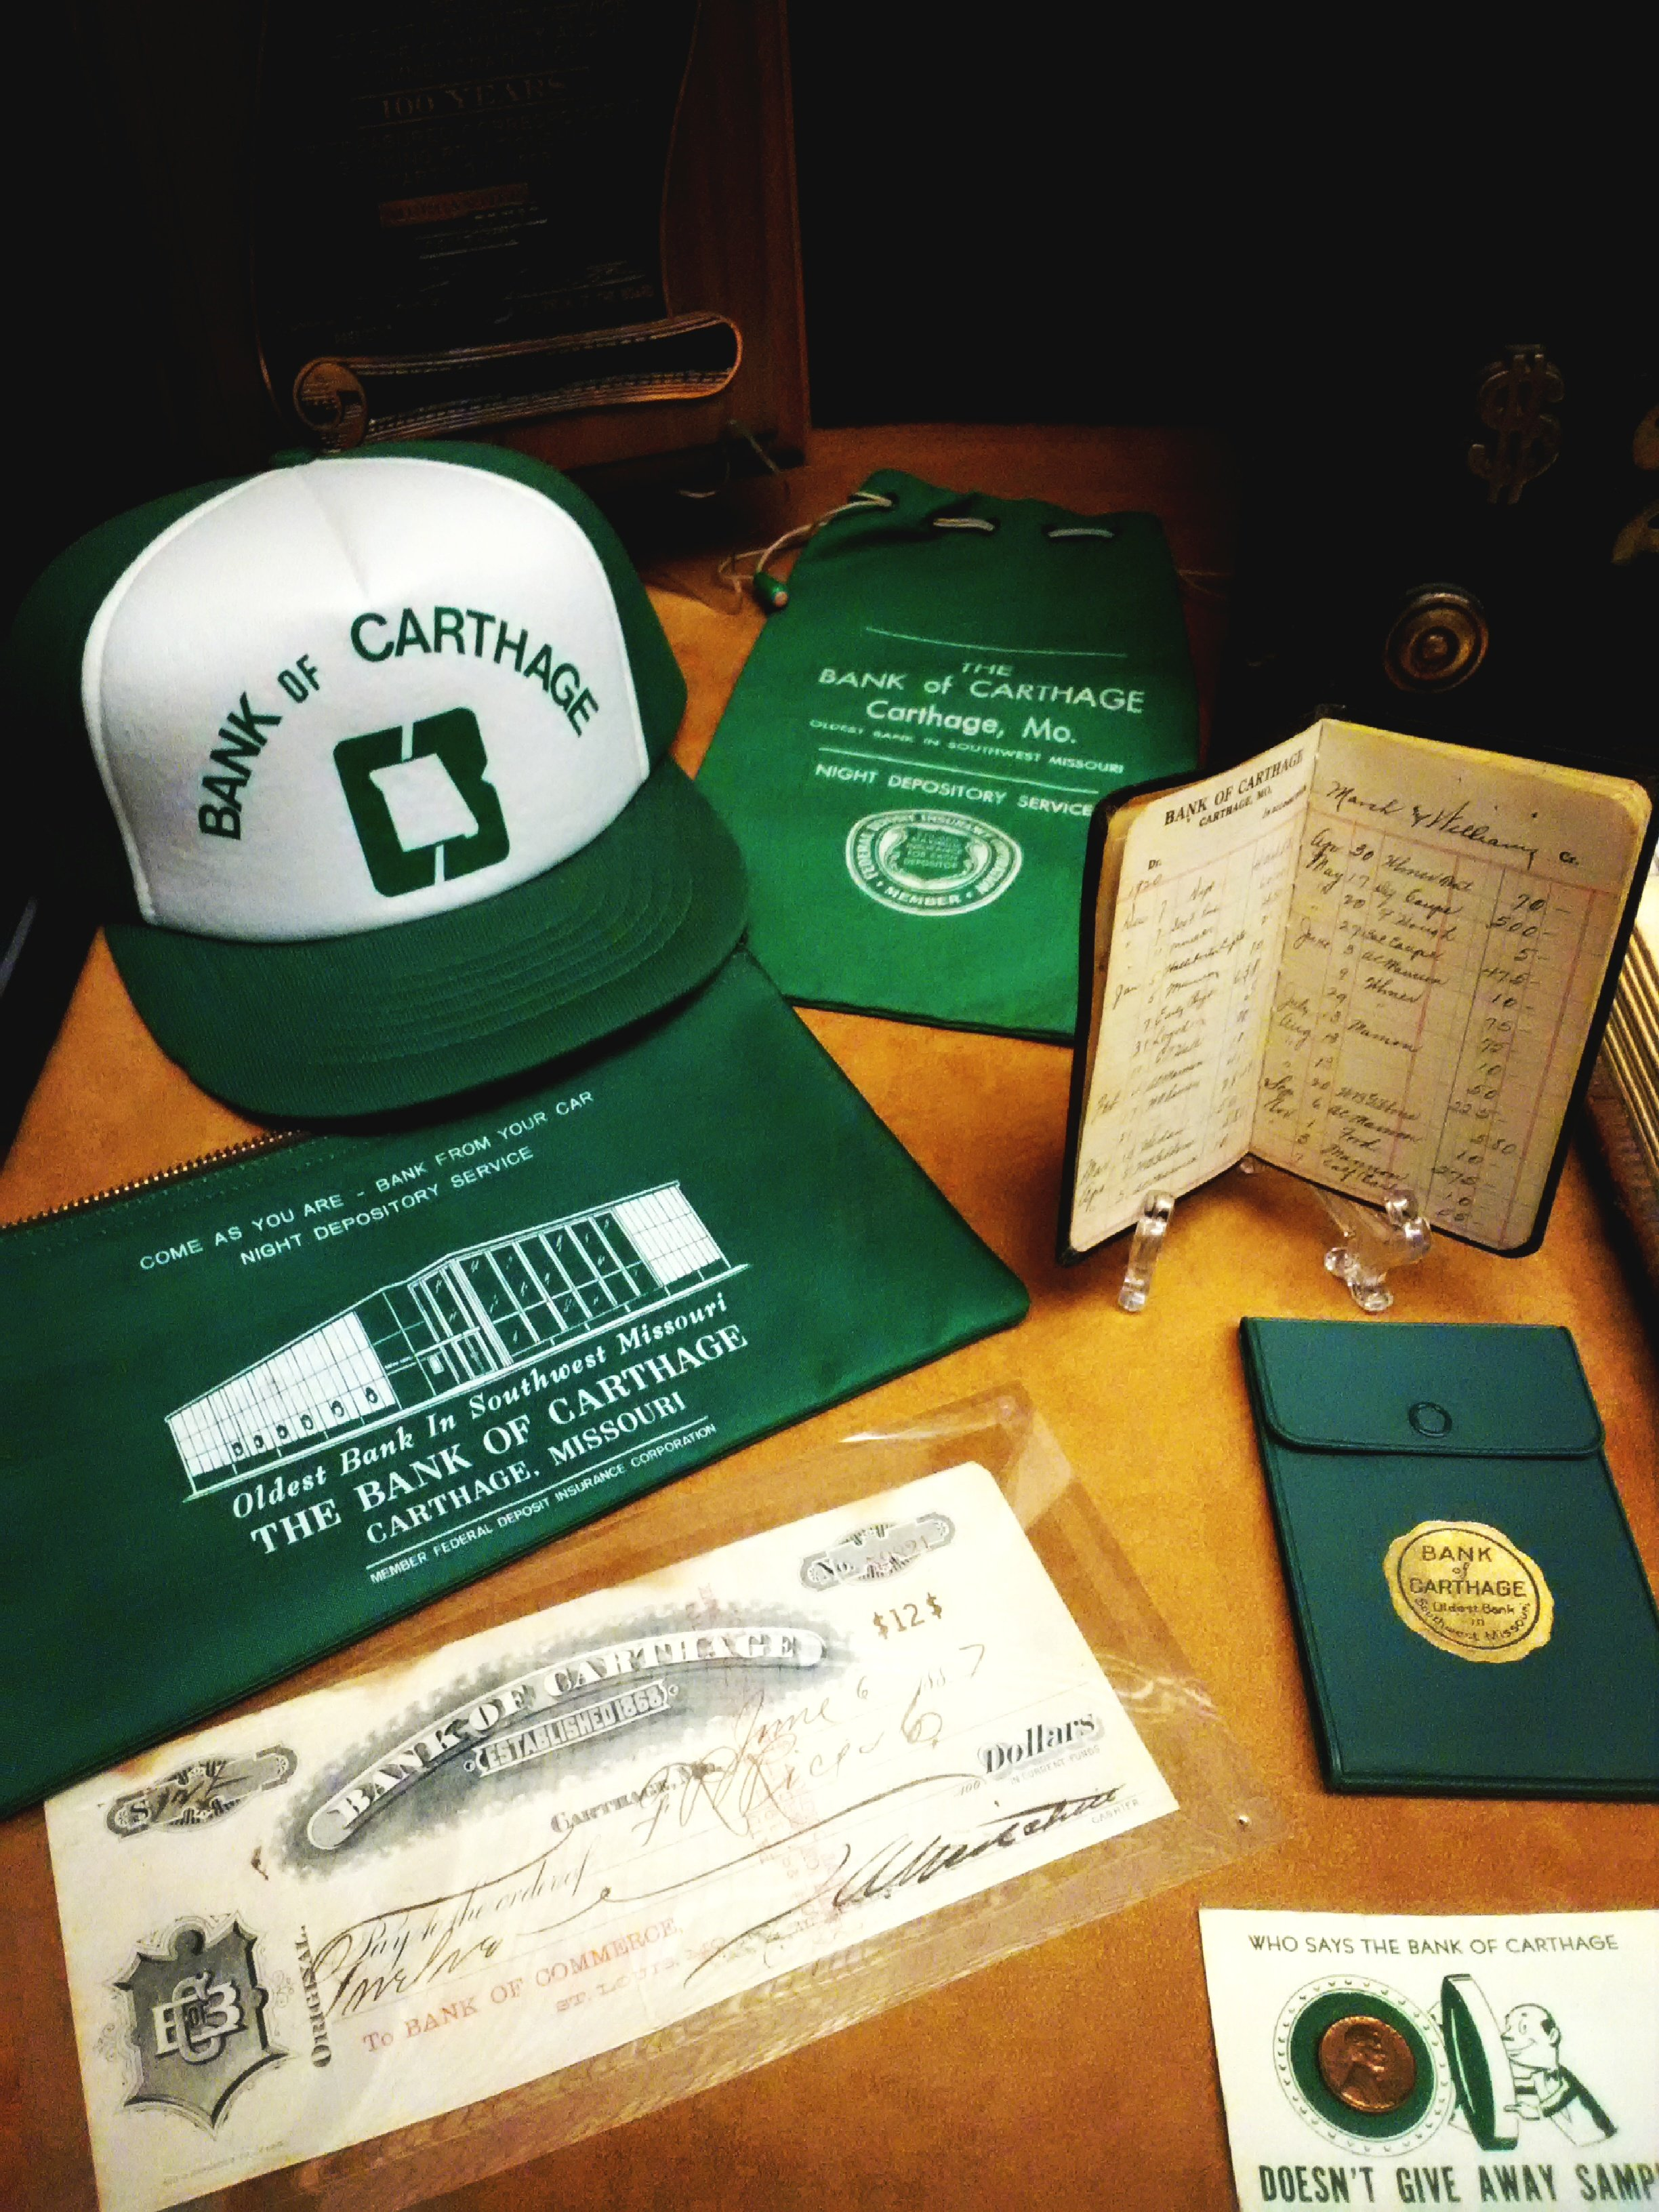 Except for 1887 check and 1920 deposit book in this grouping, all other items are associated with the second Bank of Carthage building and were on display in 175th Anniversary of Carthage Exhibit at Powers Museum in 2017.